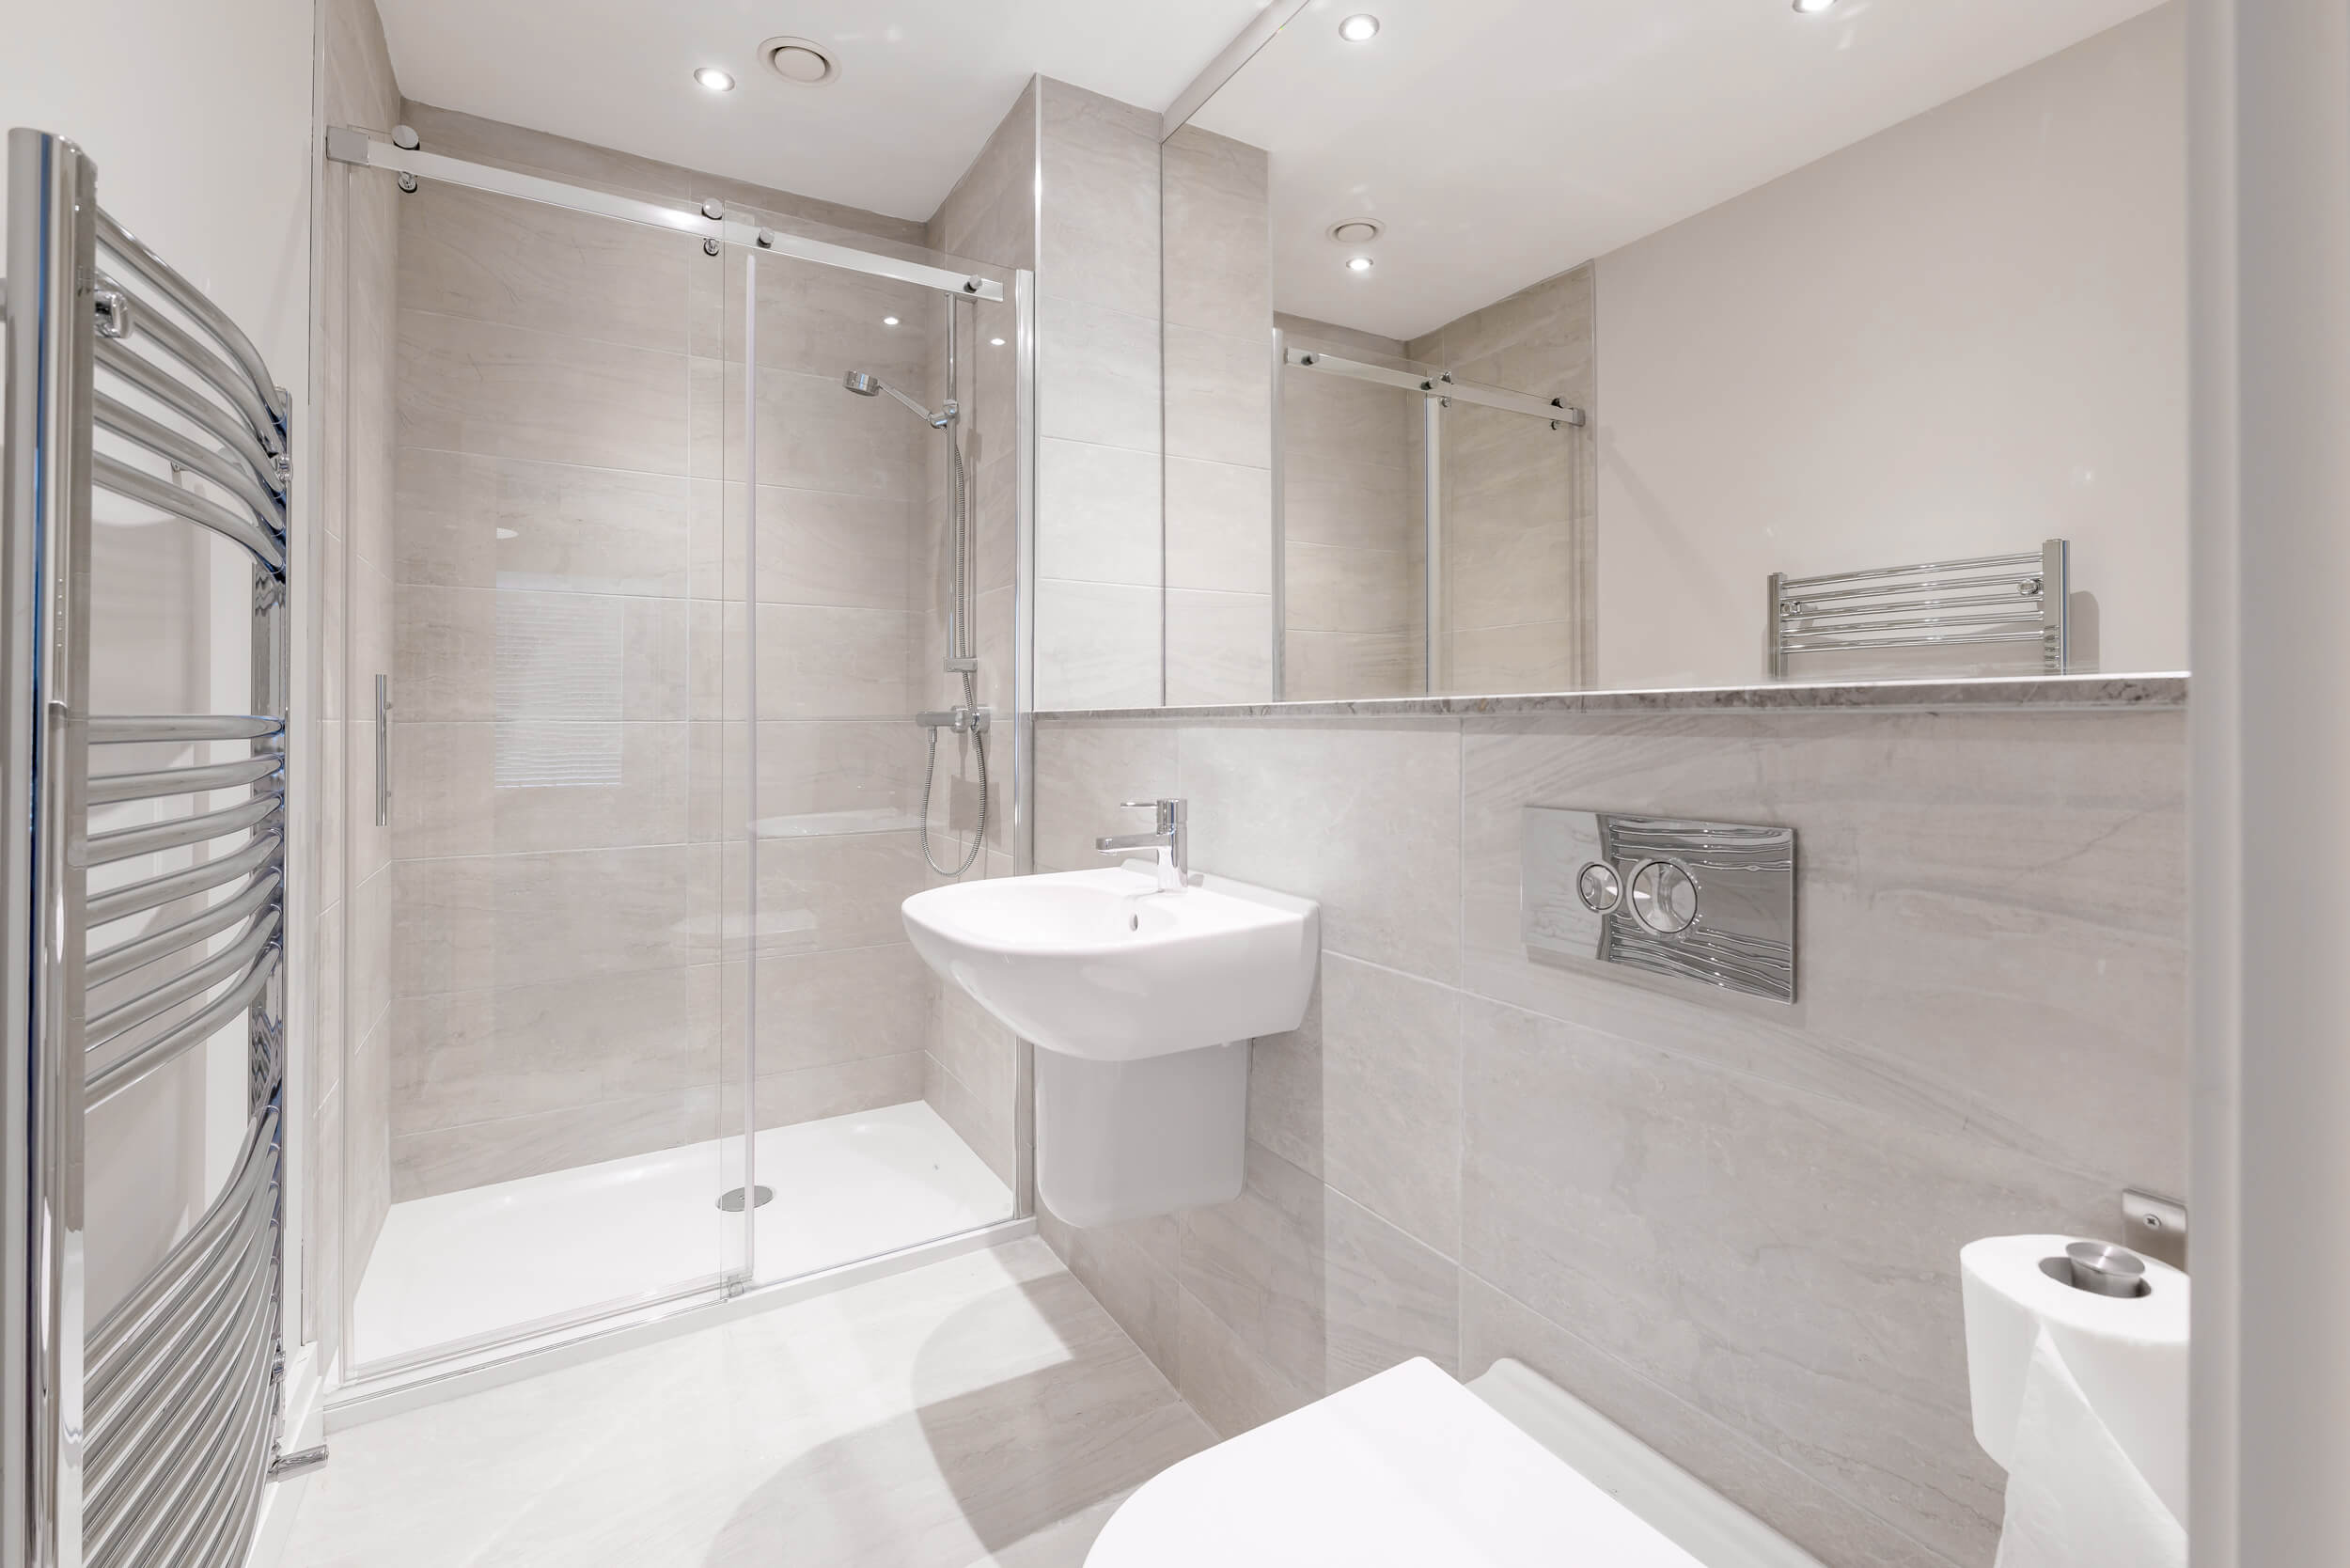 Fitted bathroom with enclosed shower, designer radiator and modern bathroom suite